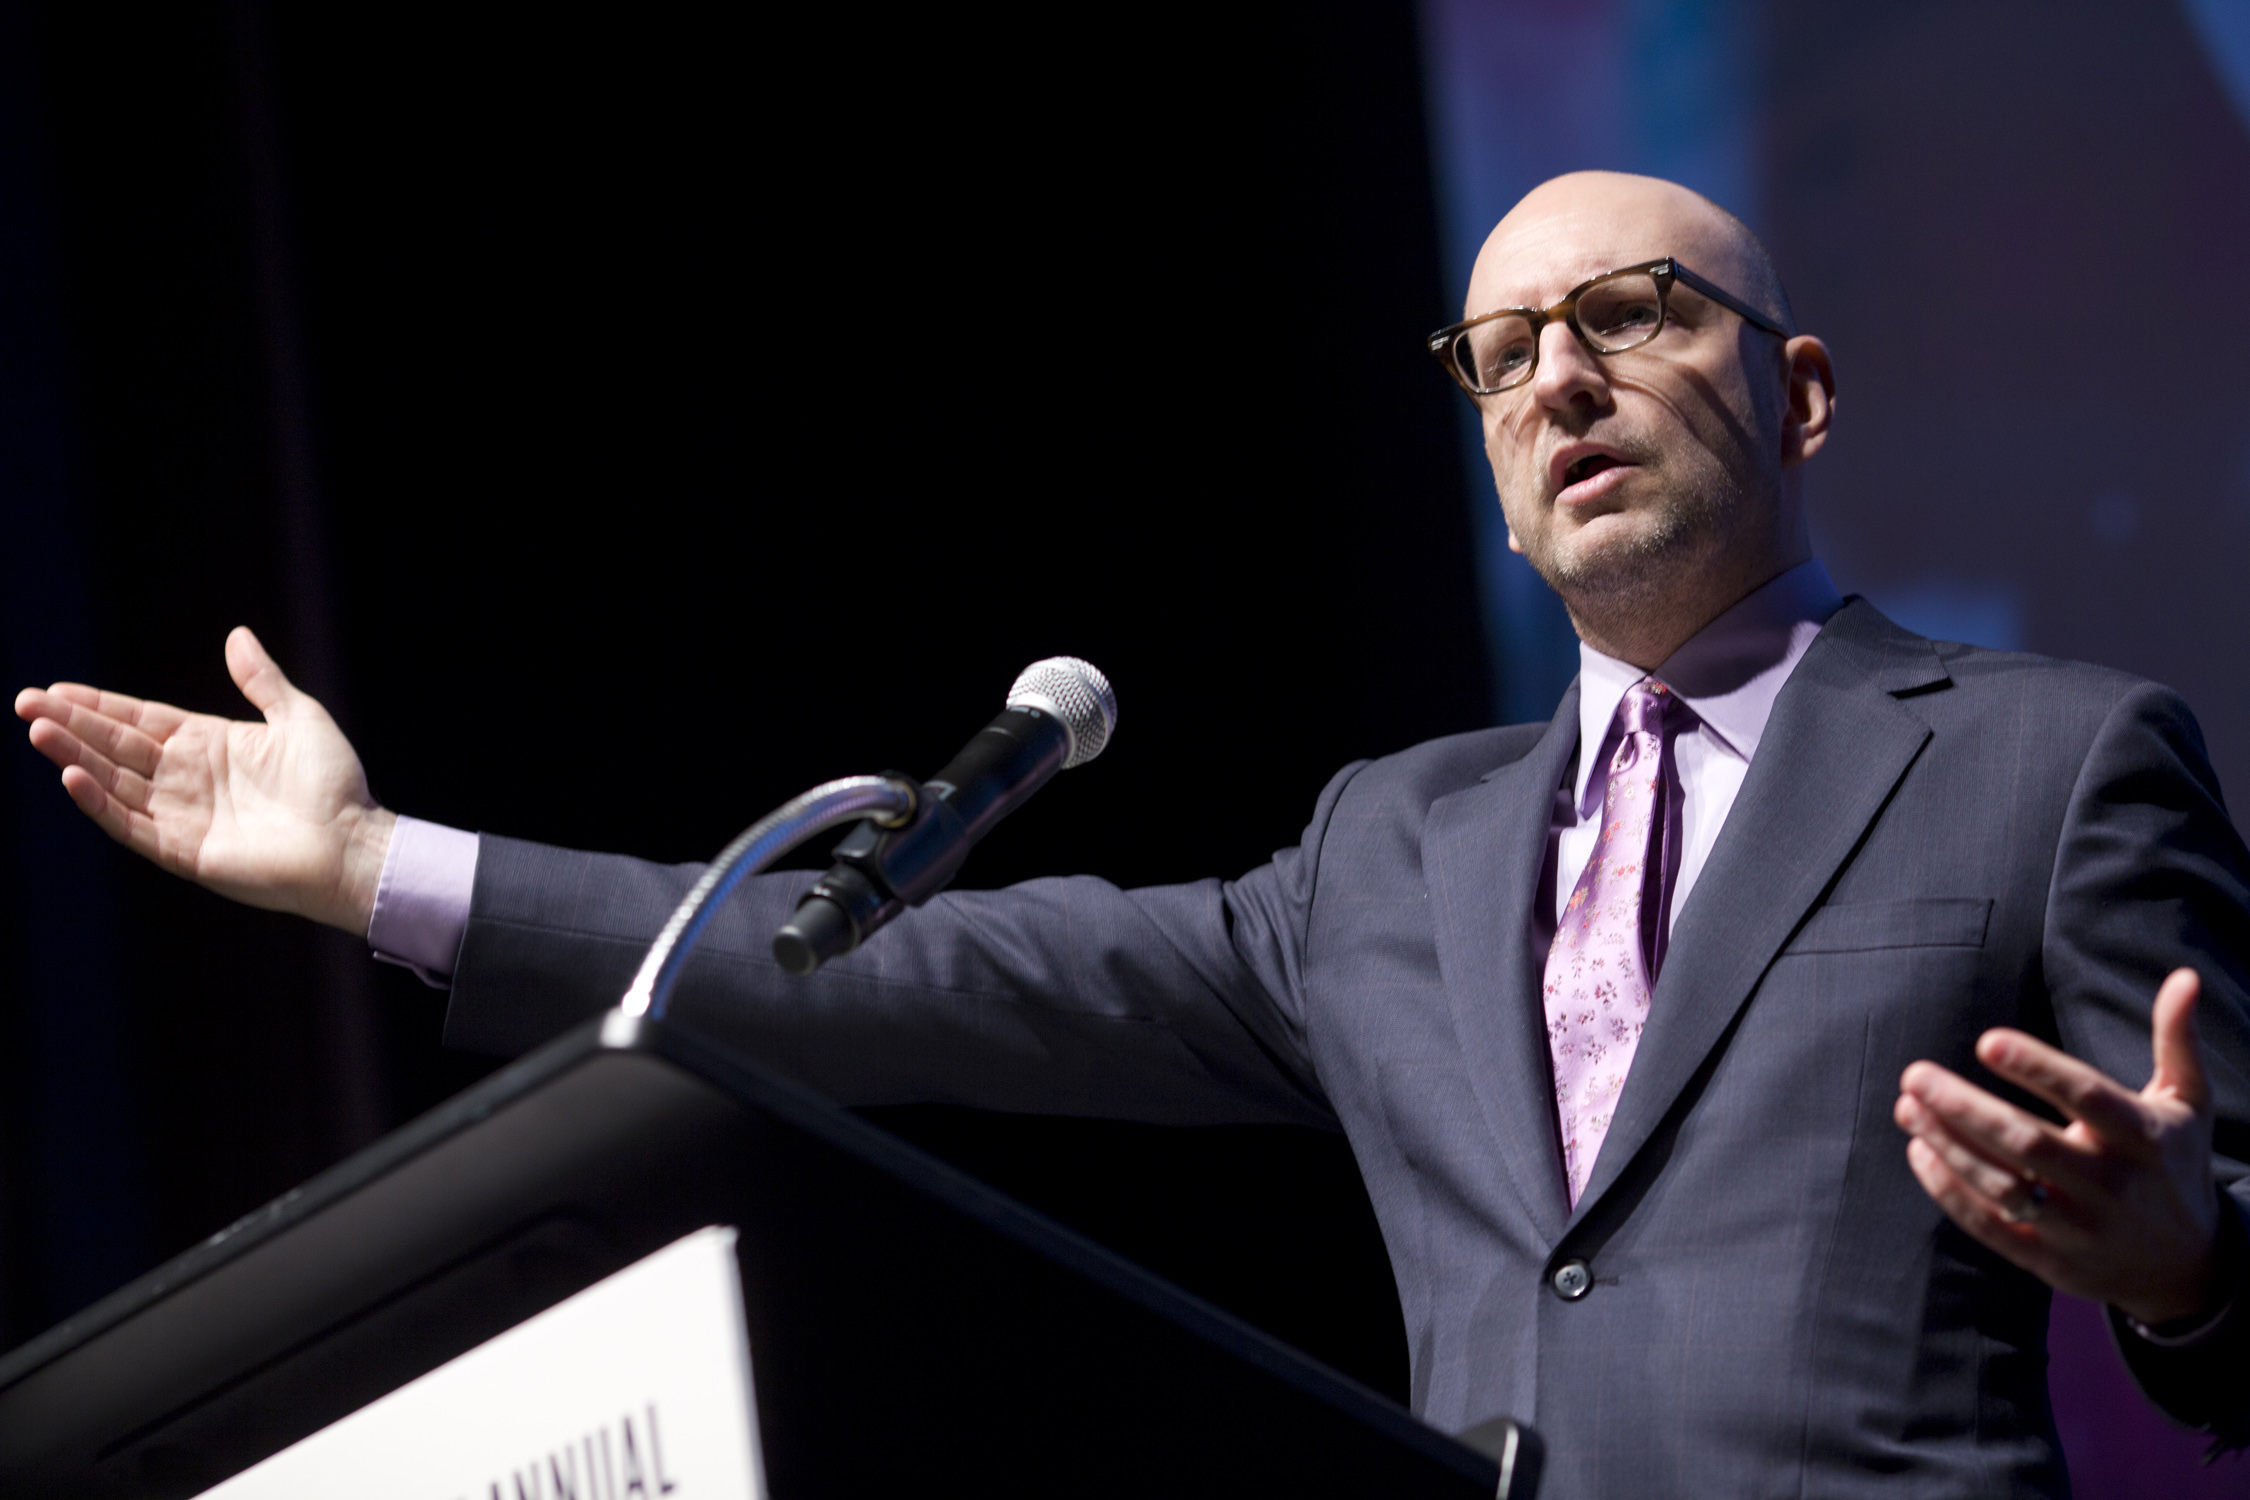 SFIFF: Steven Soderbergh's State of Cinema Address Takes On Studios, Calls Out Online Piracy